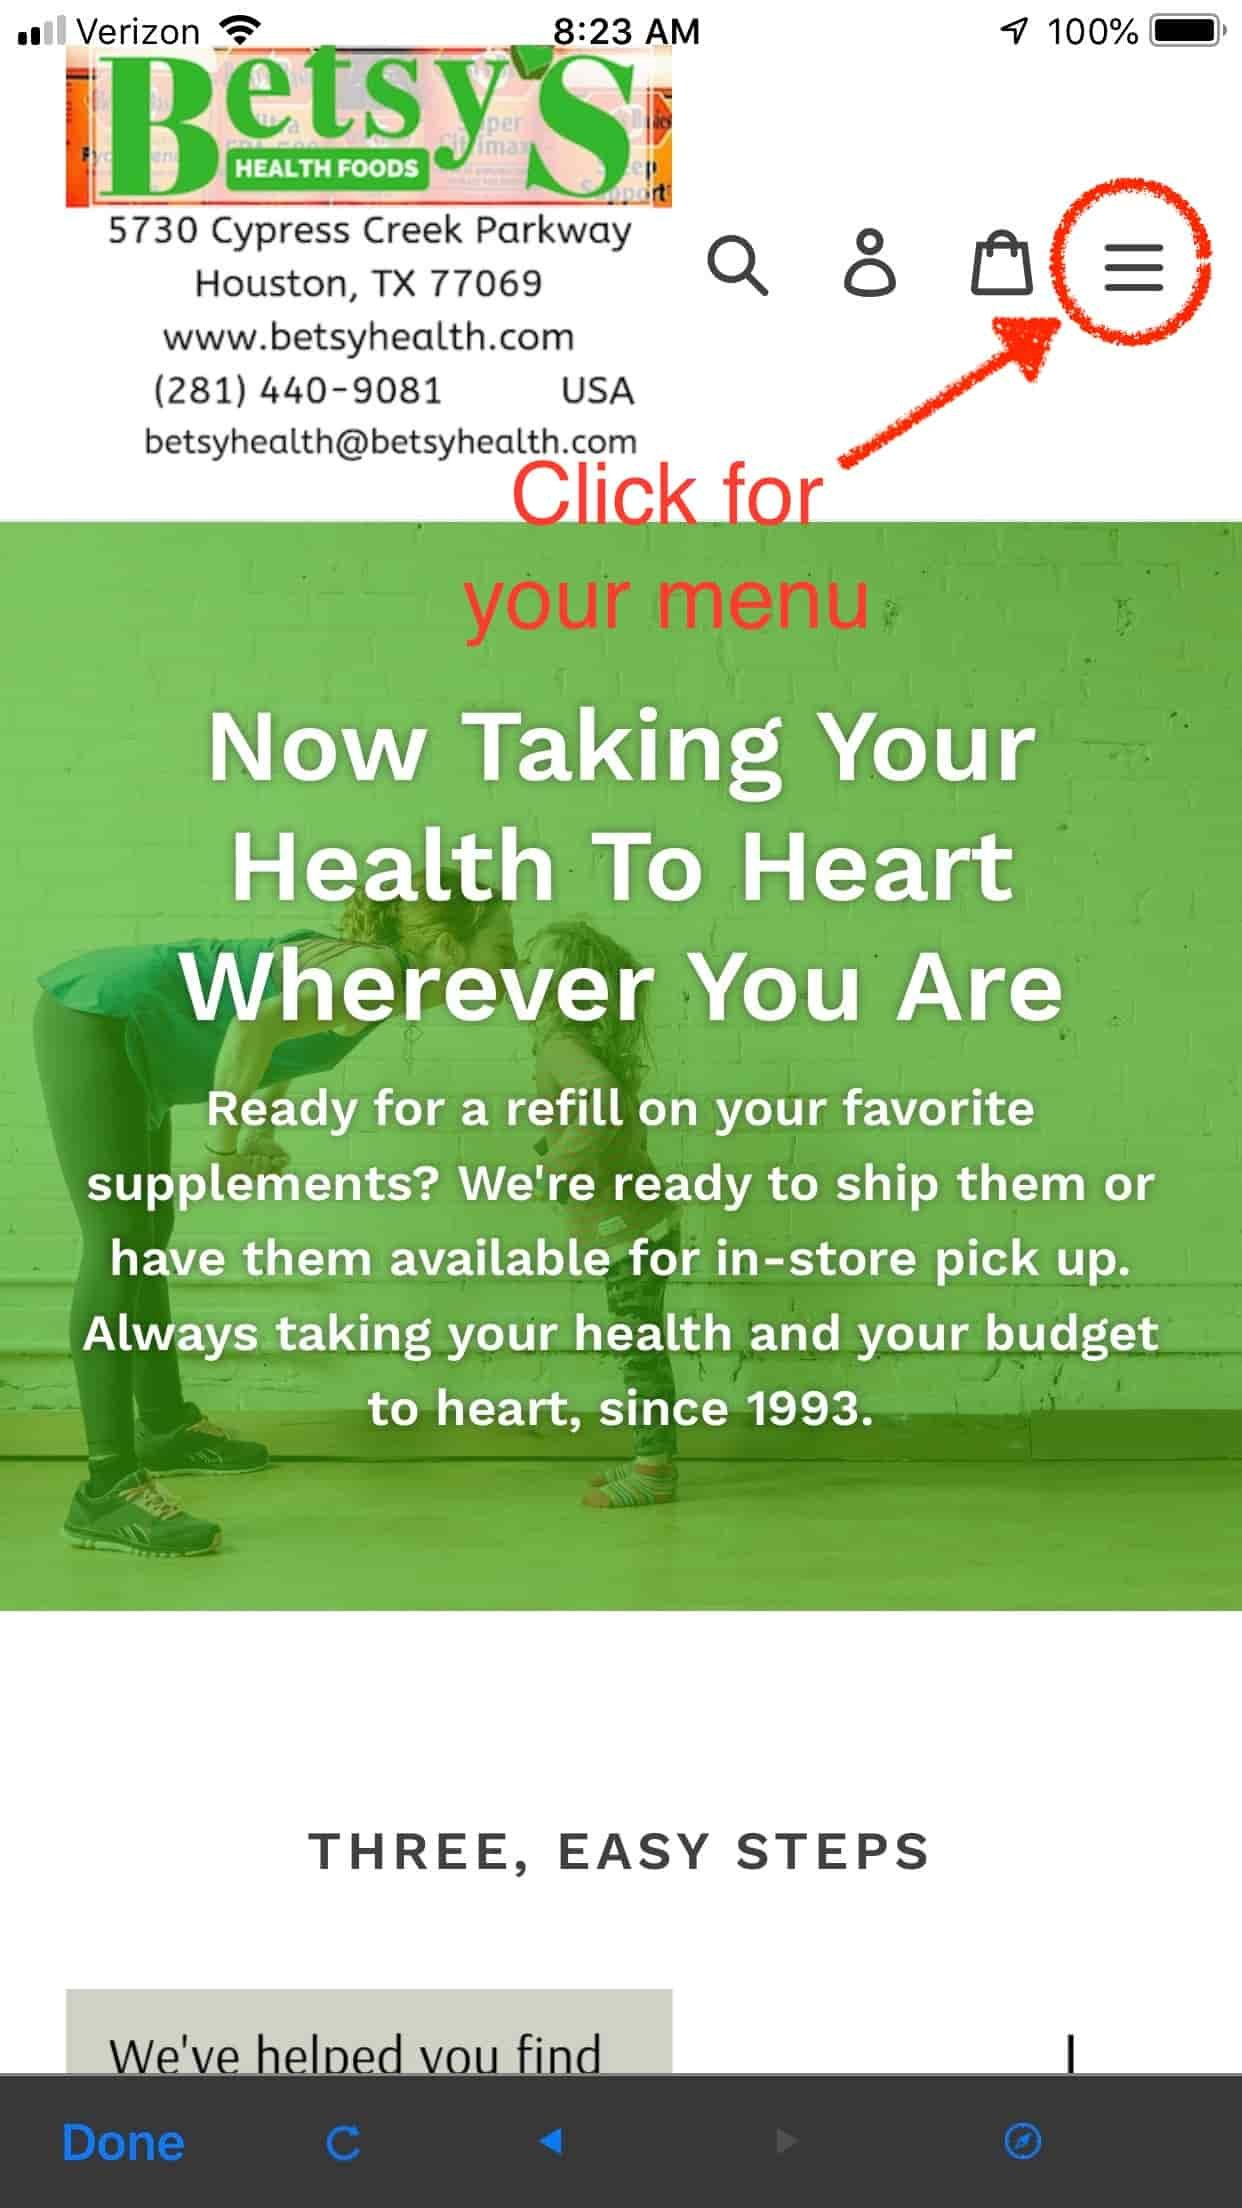 Where to find the mobile menu for BetsyHealth